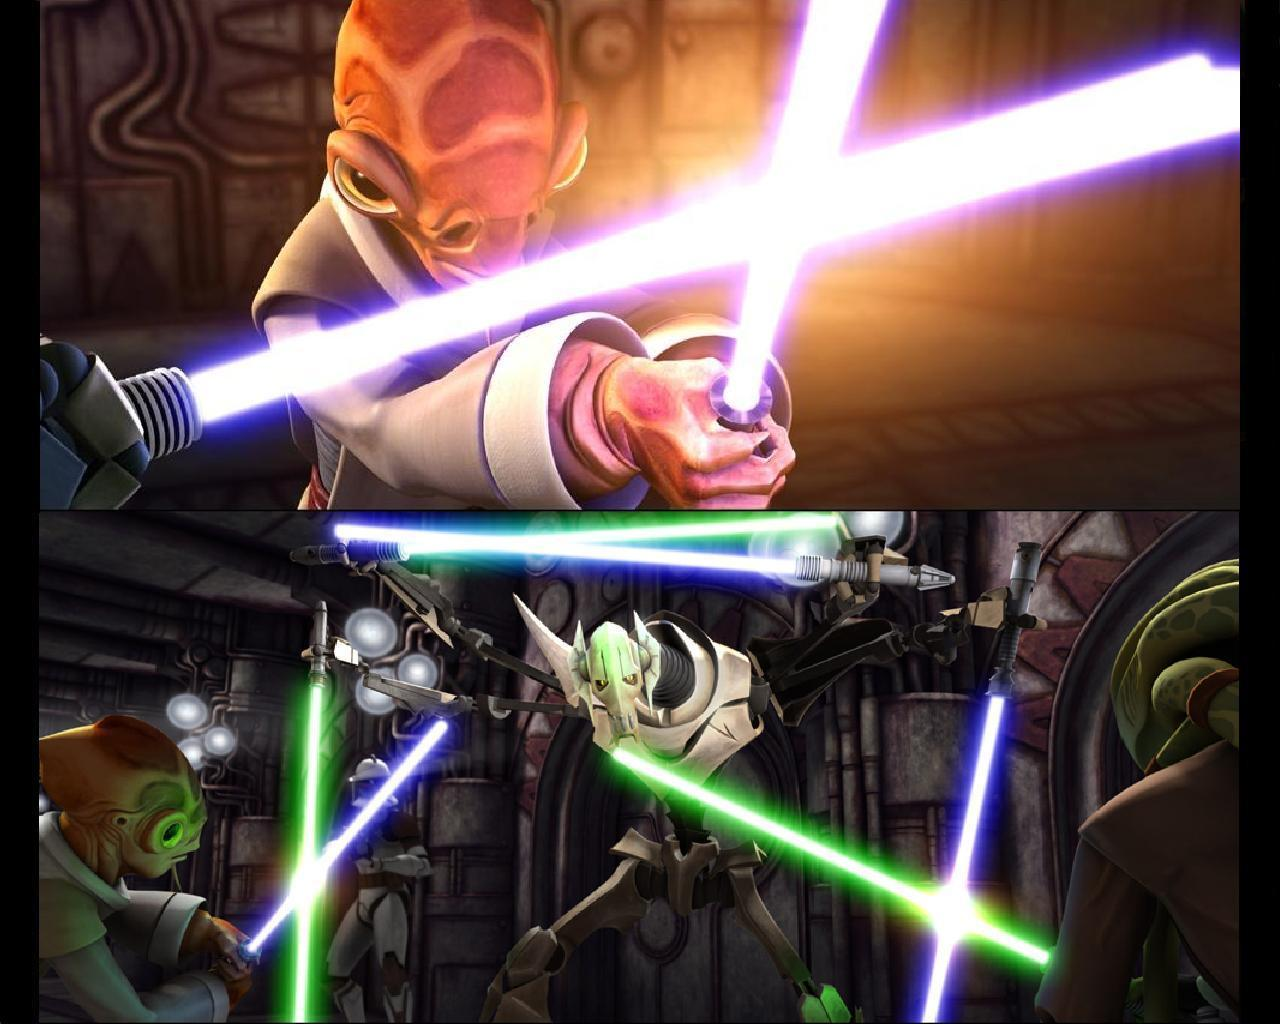 toile toile star Wars images Clone Wars Ep 10 Lair of 1280x1024